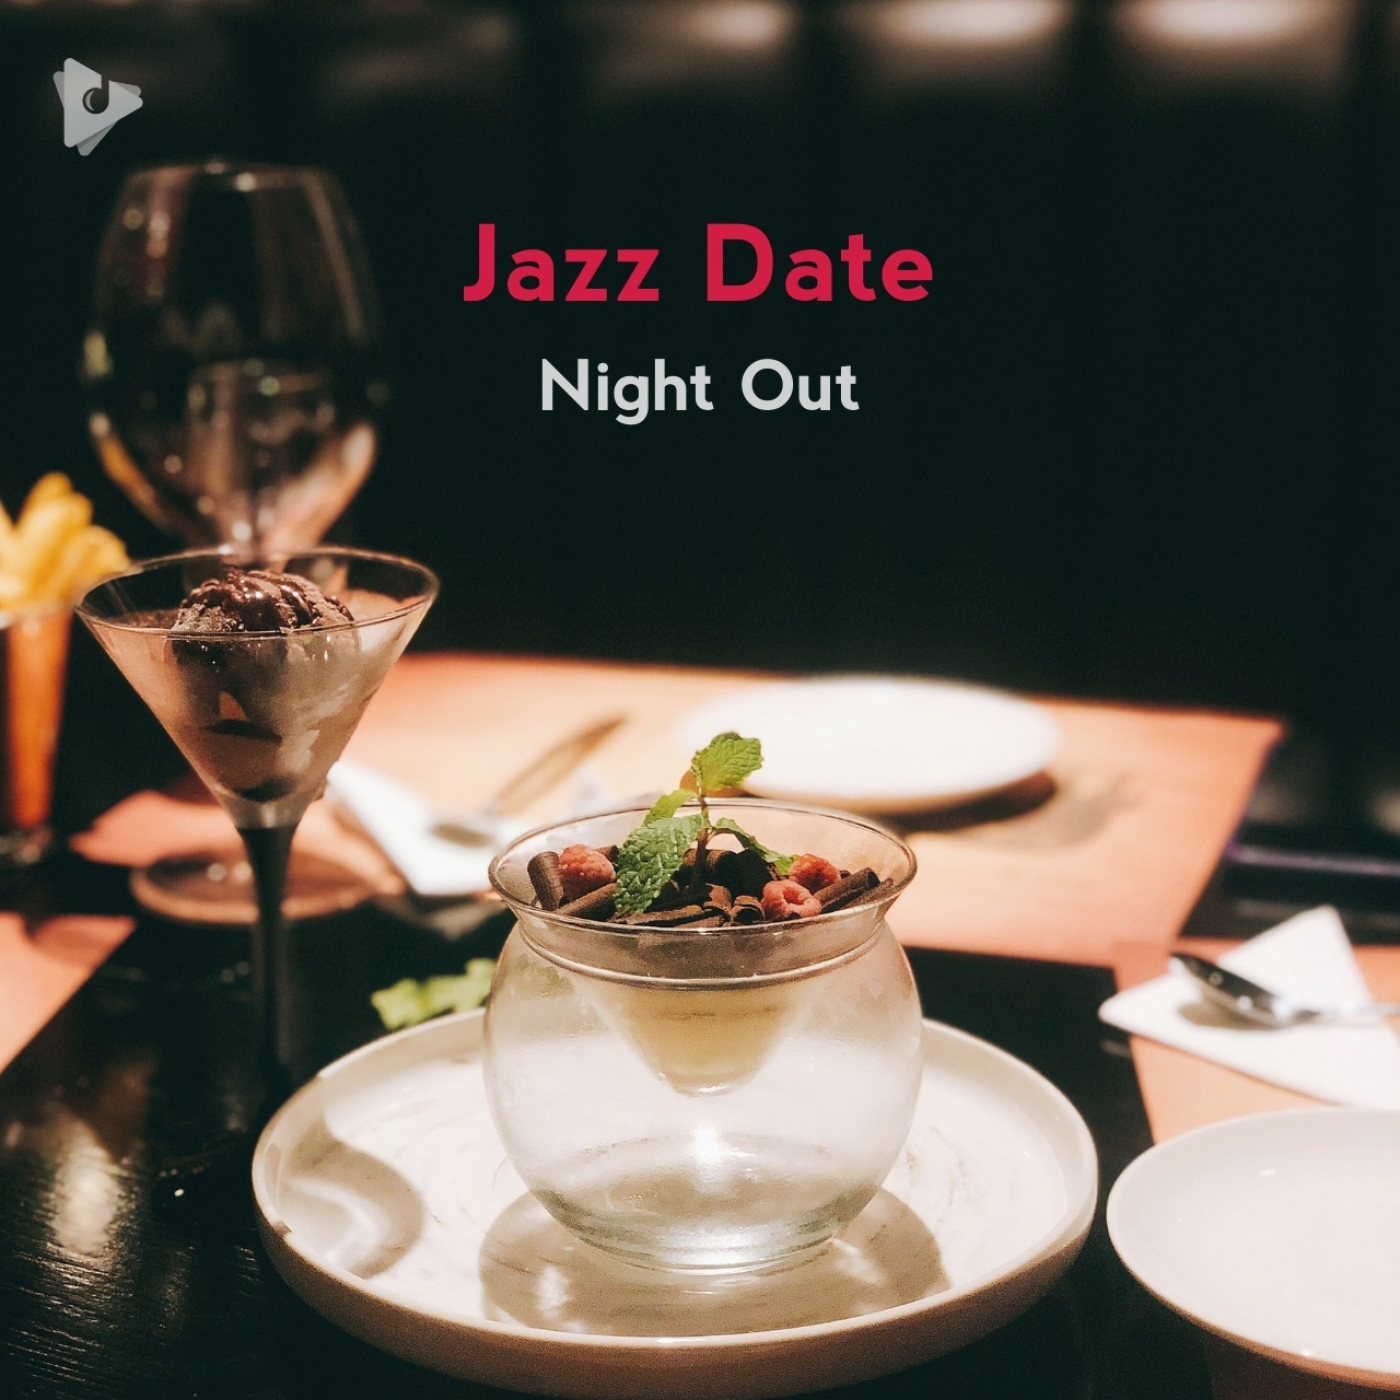 Jazz Date Night Out